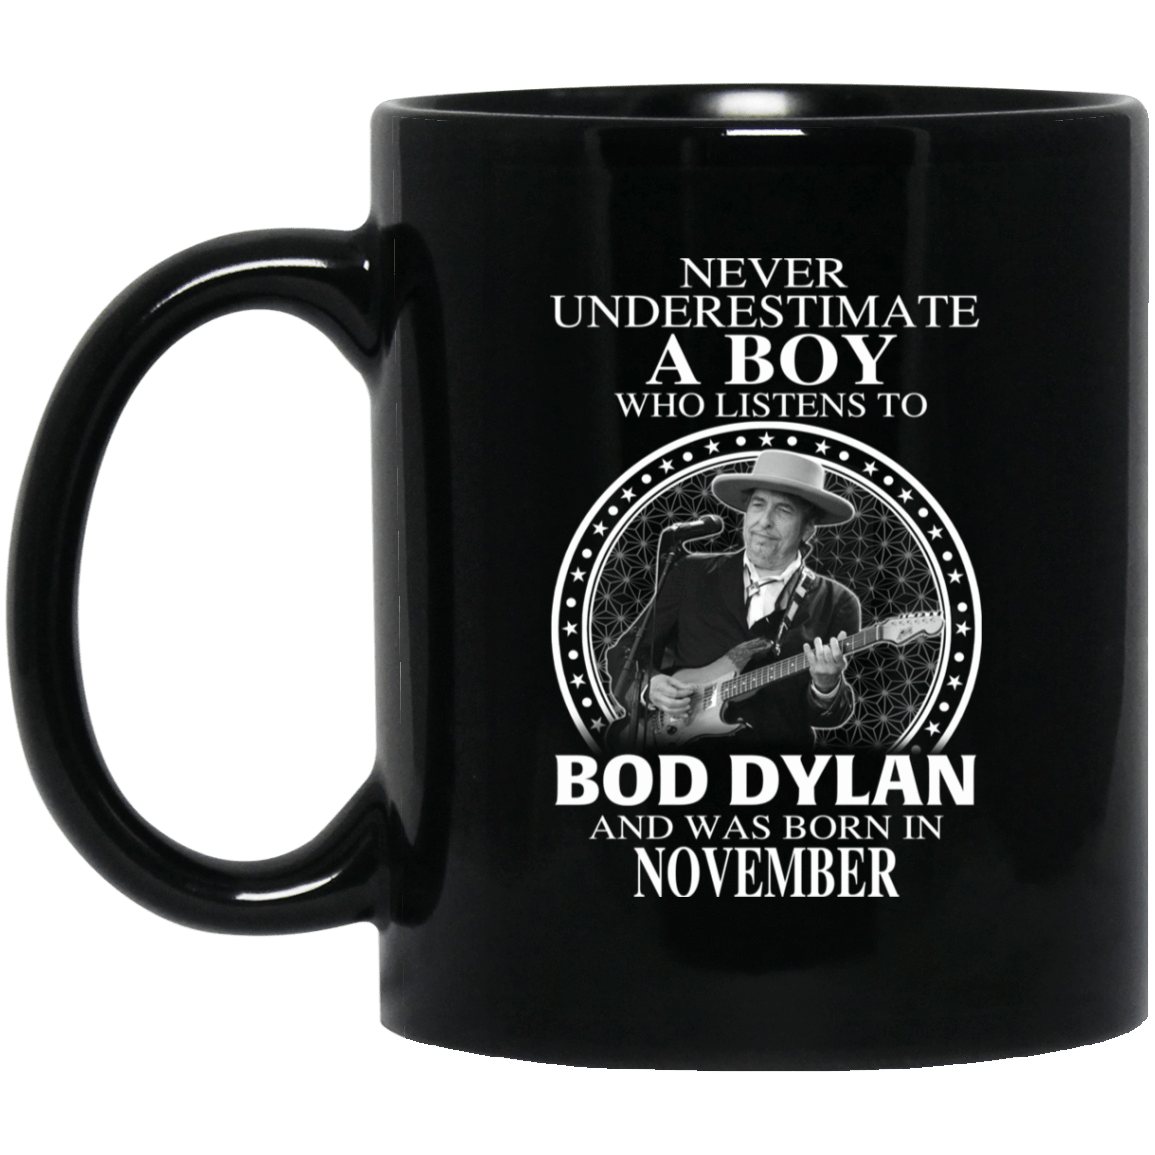 A Boy Who Listens To Bob Dylan And Was Born In November Mug 1065-10181-76153784-49307 - Tee Ript